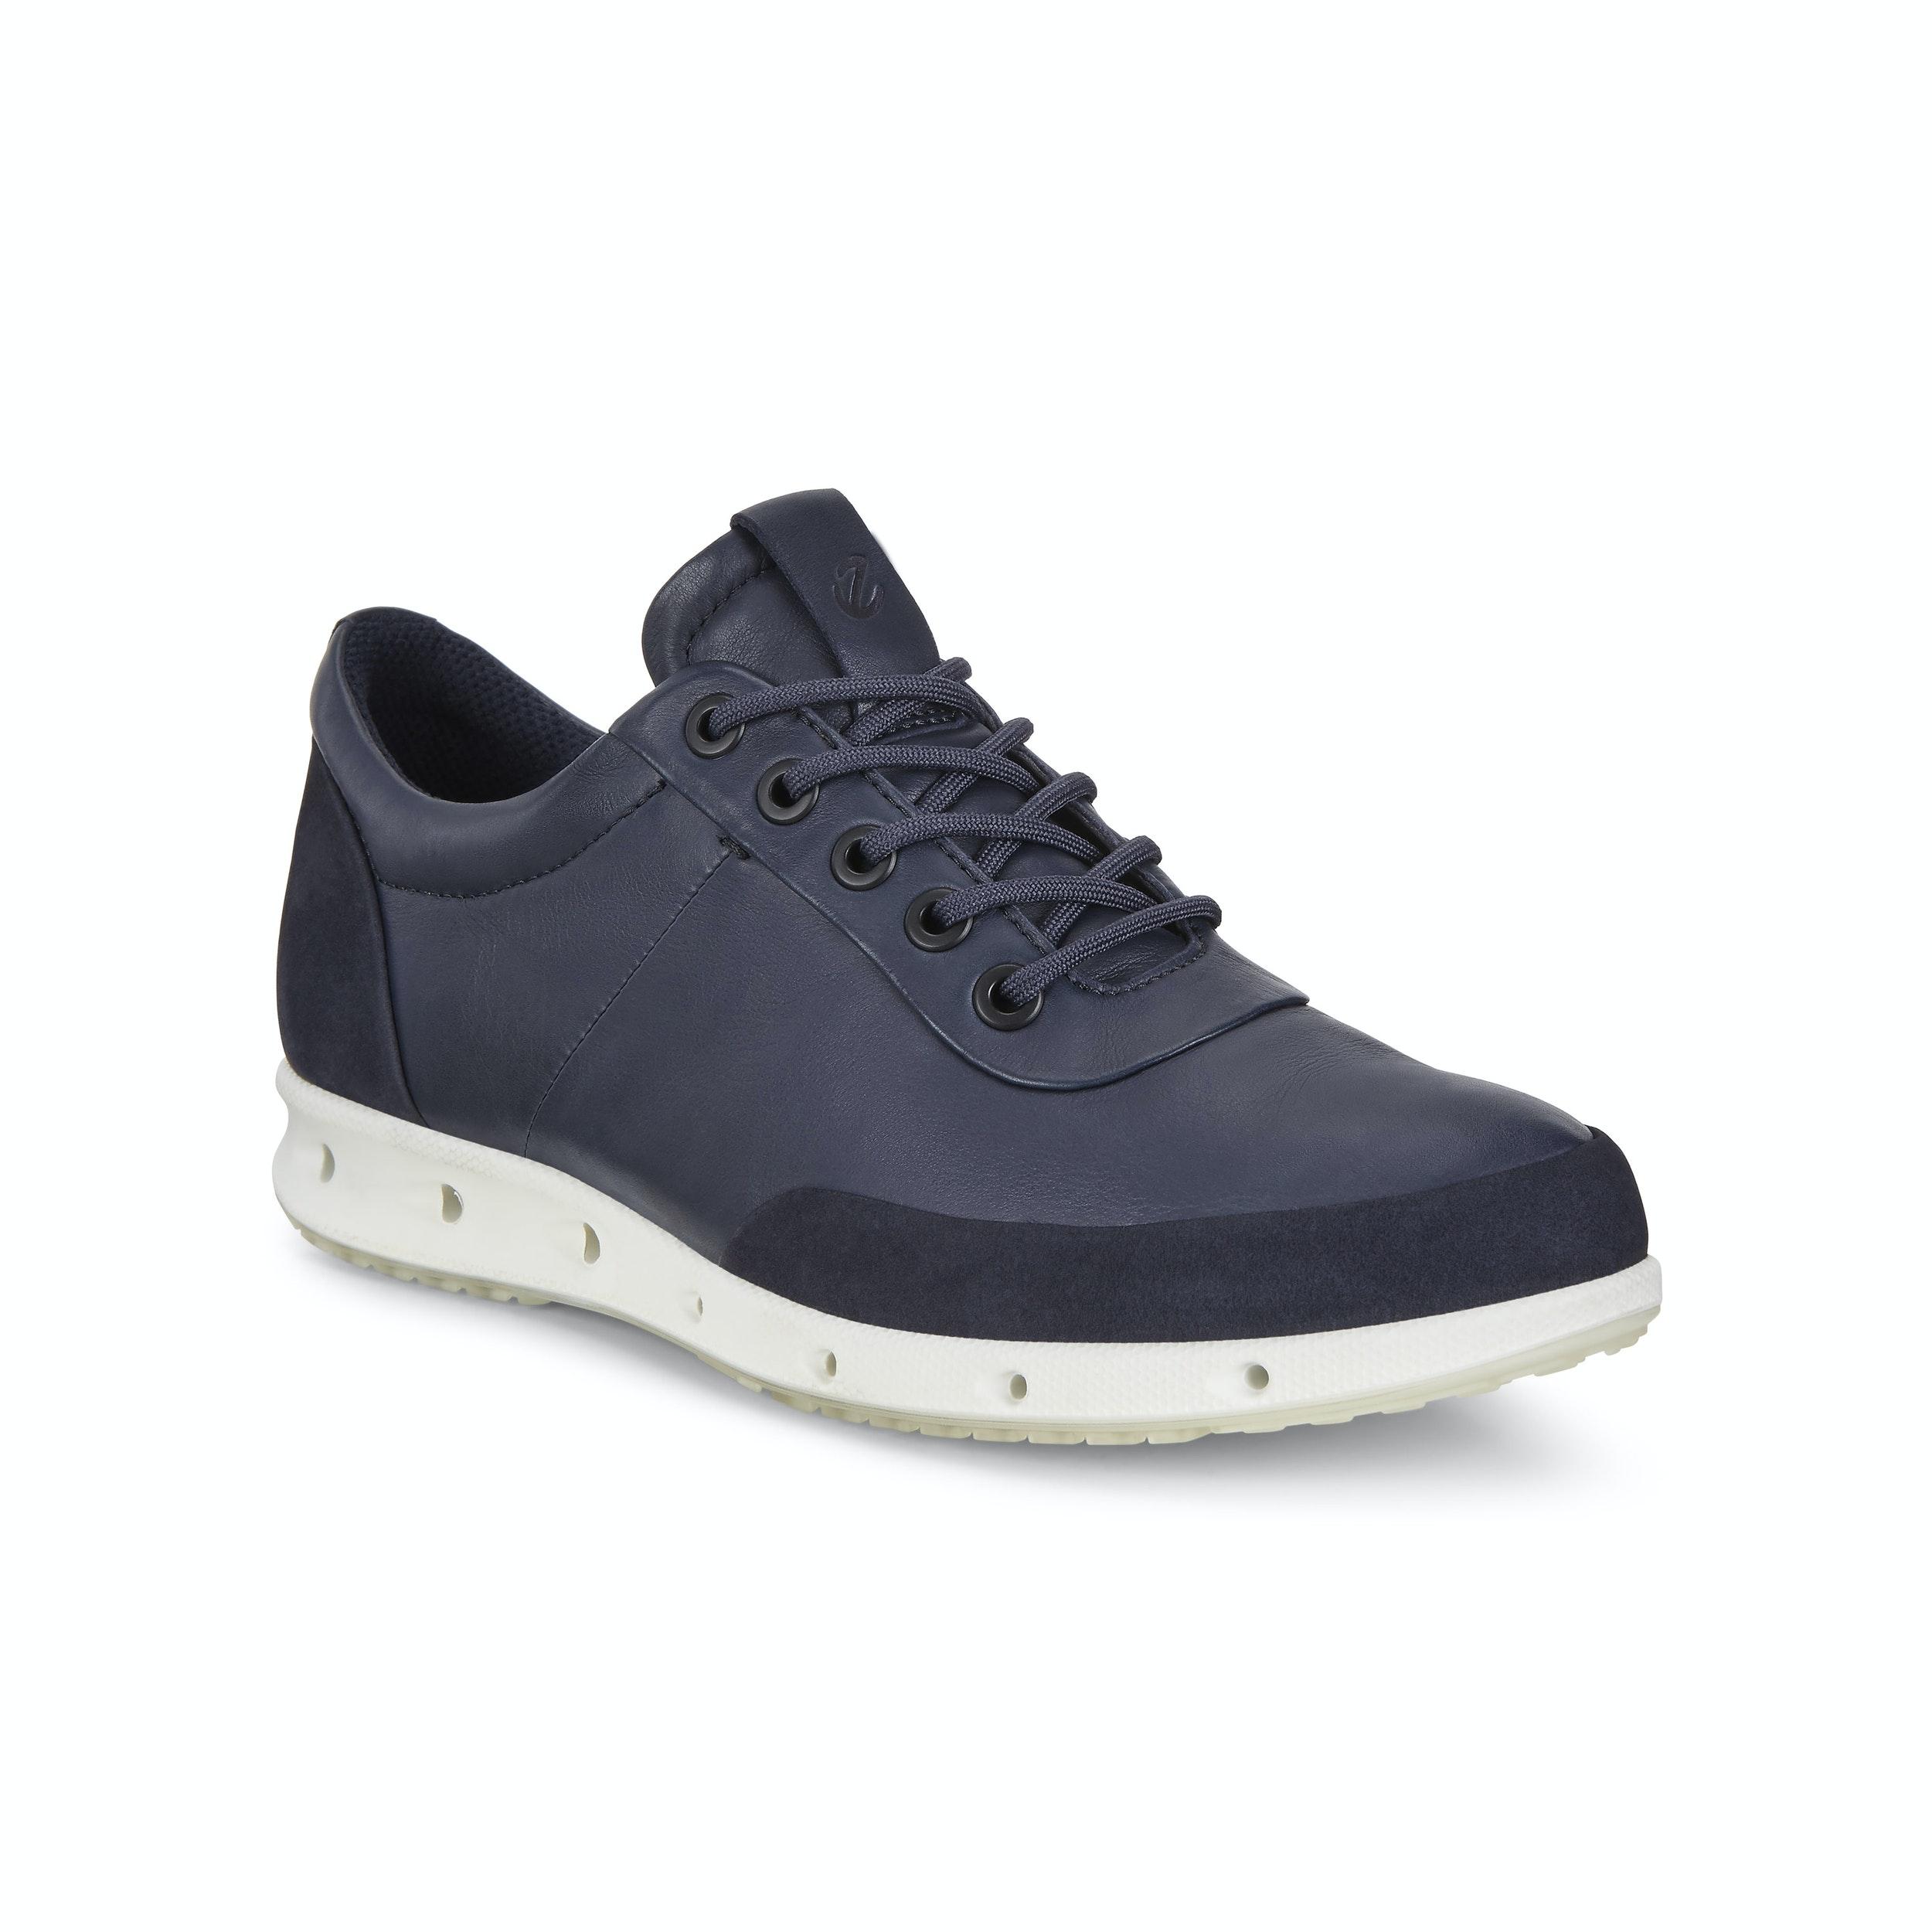 utterly stylish vast selection new styles Women's ECCO Cool Surround GTX - Sporty Gore-Tex Surround ...